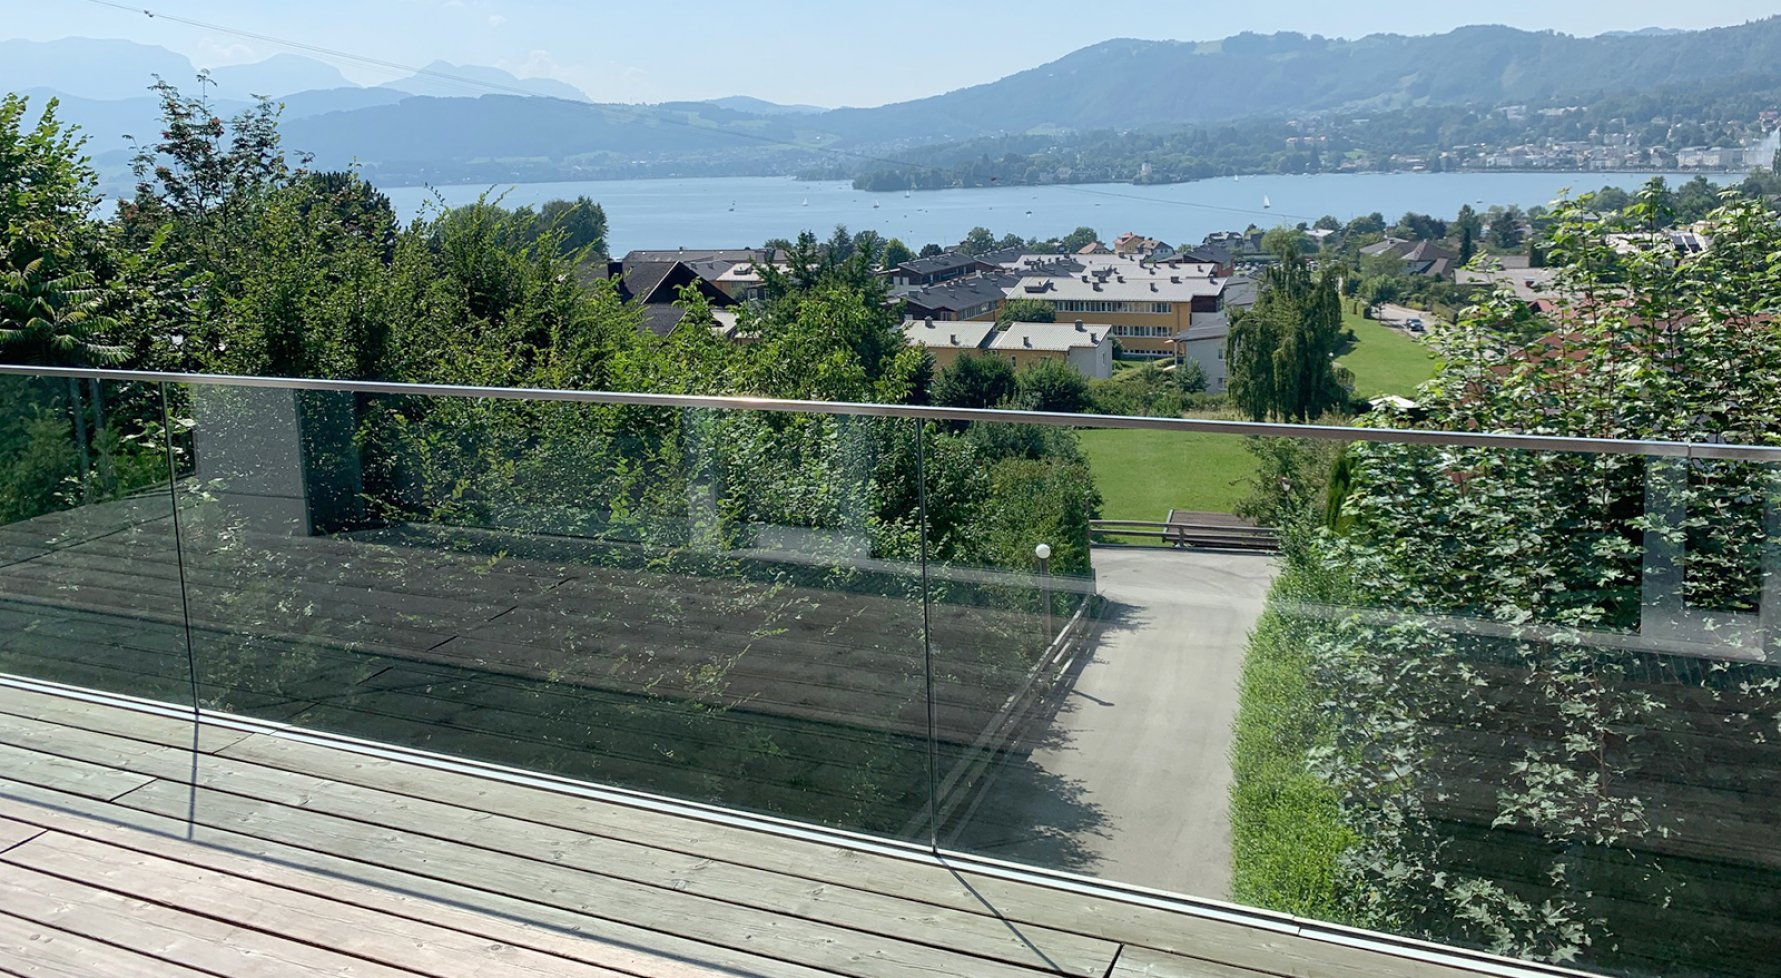 Property in 5310 Mondsee - Salzkammergut: Luxury chalet with lake view pool terrace  - picture 1